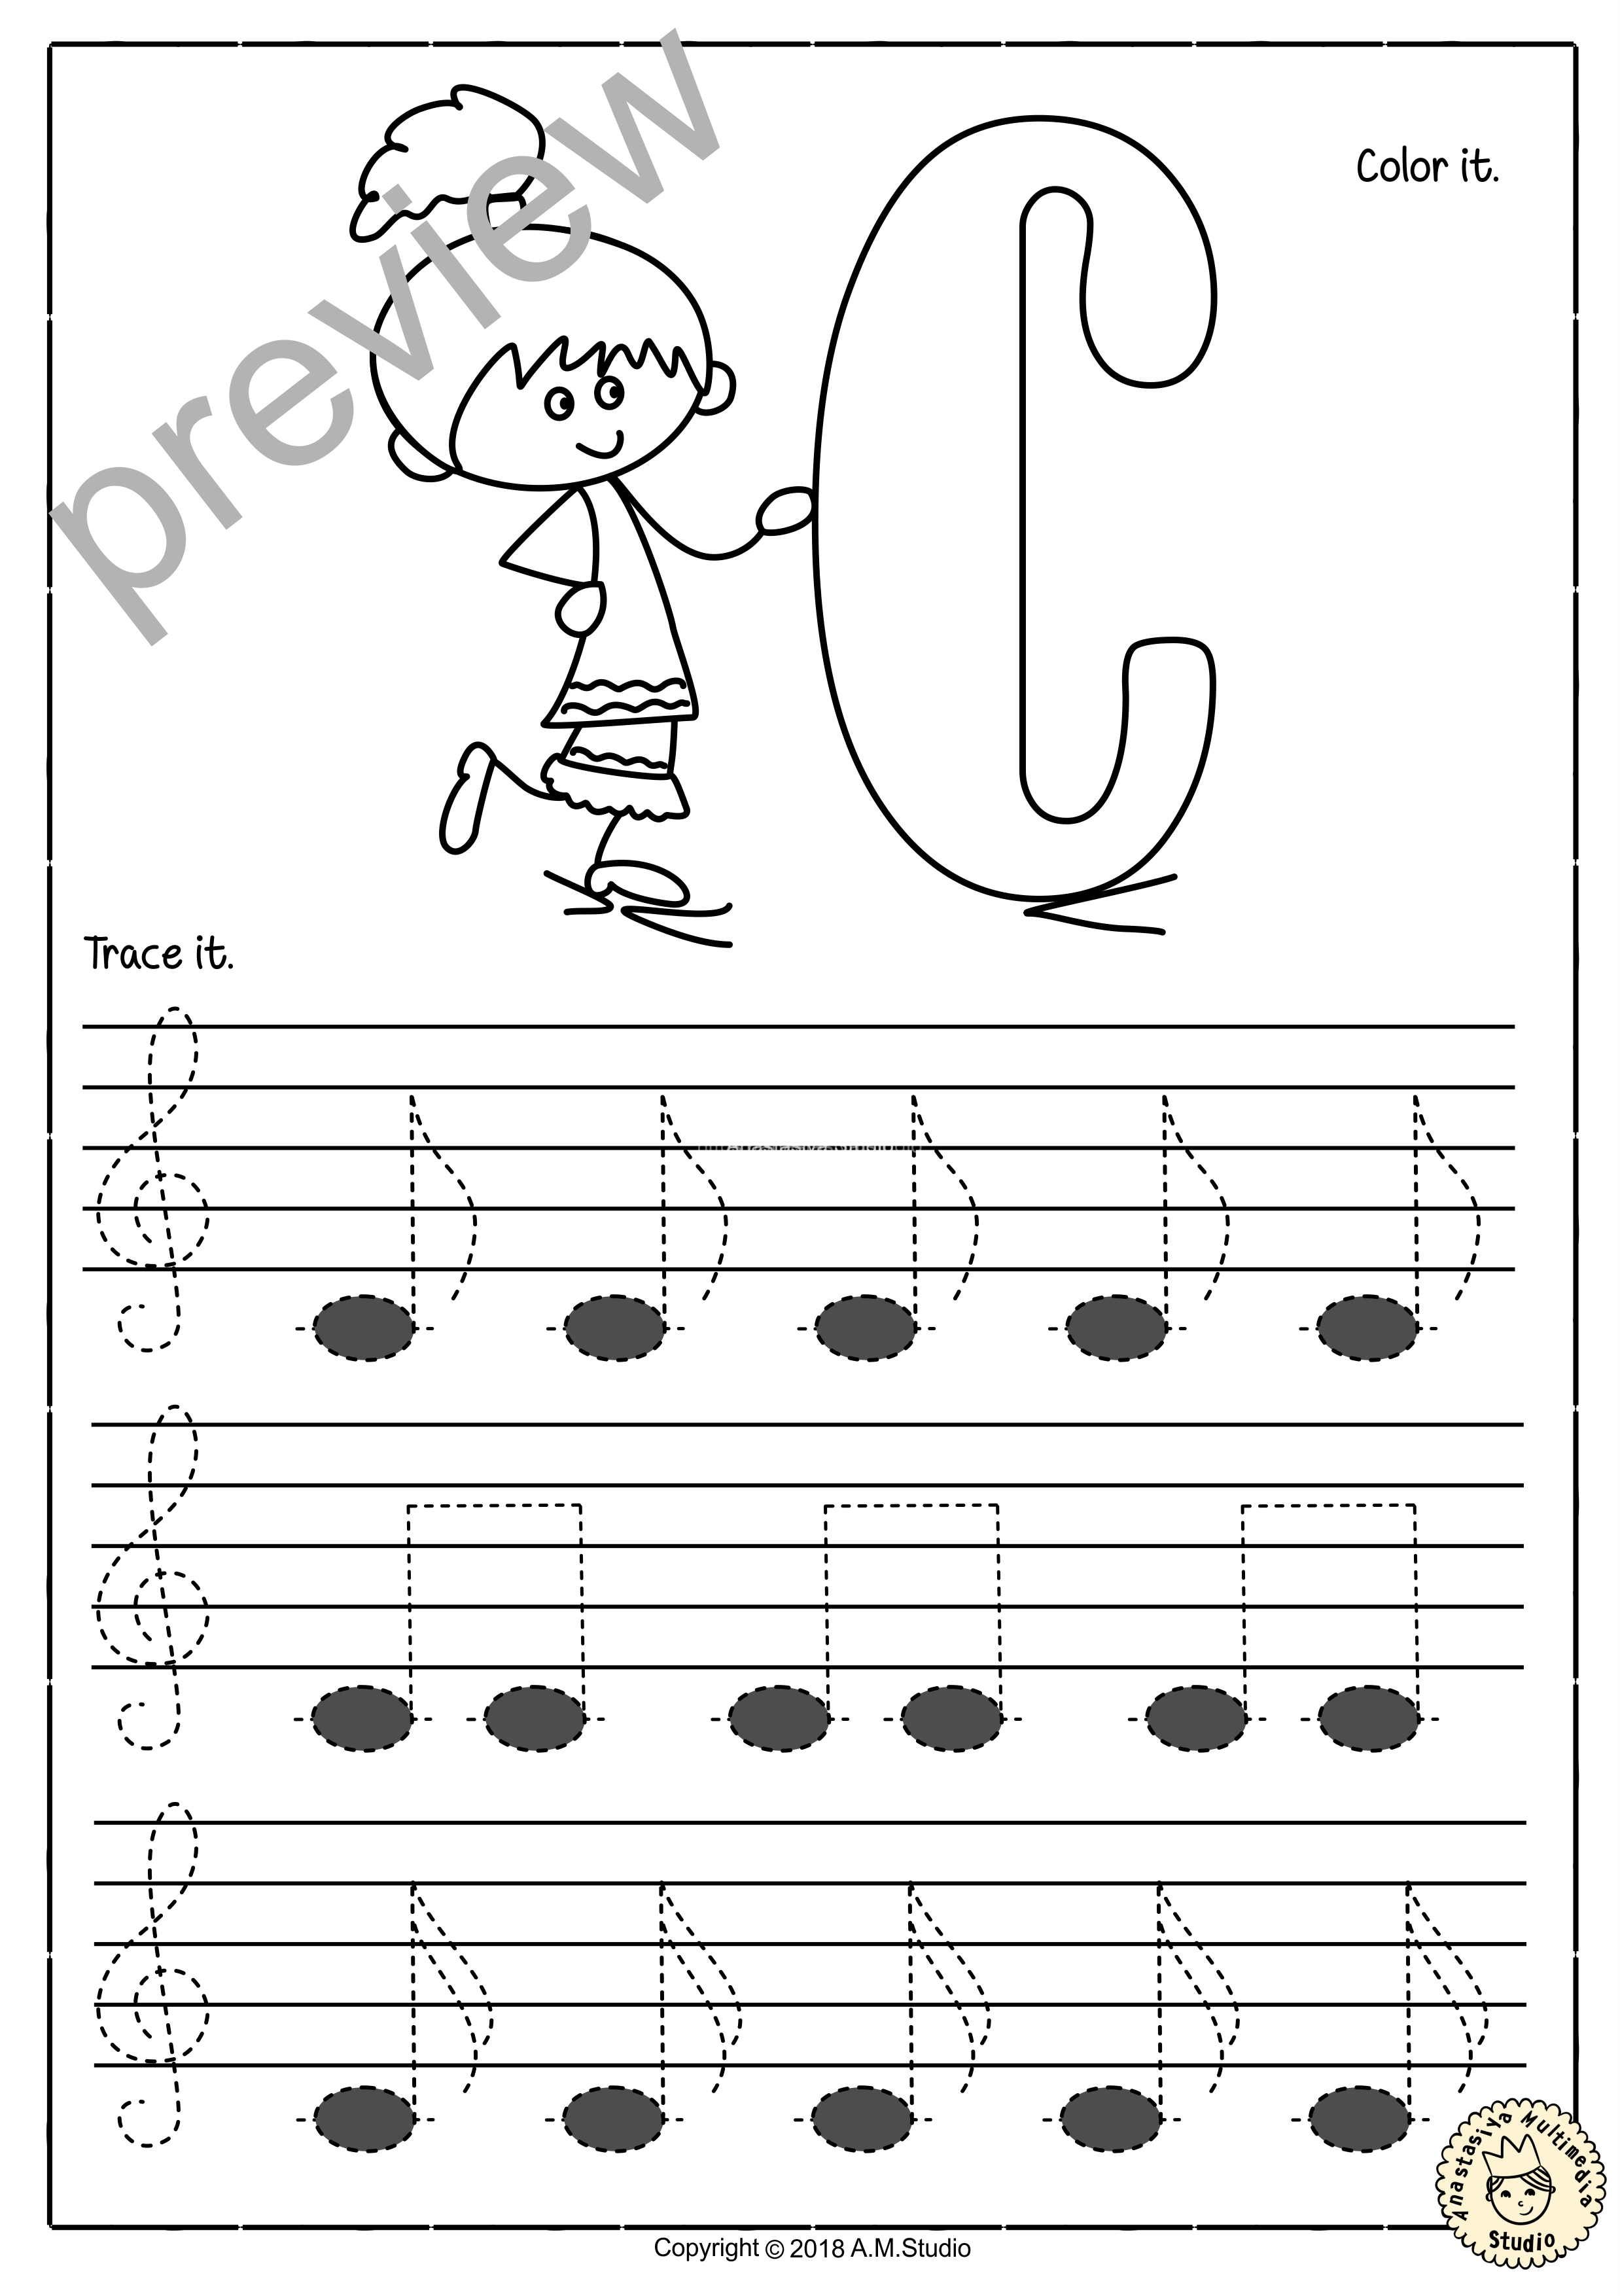 Tracing Music Notes Worksheets For Kids Treble Clef 3 Anastasiya Multimedia Studio